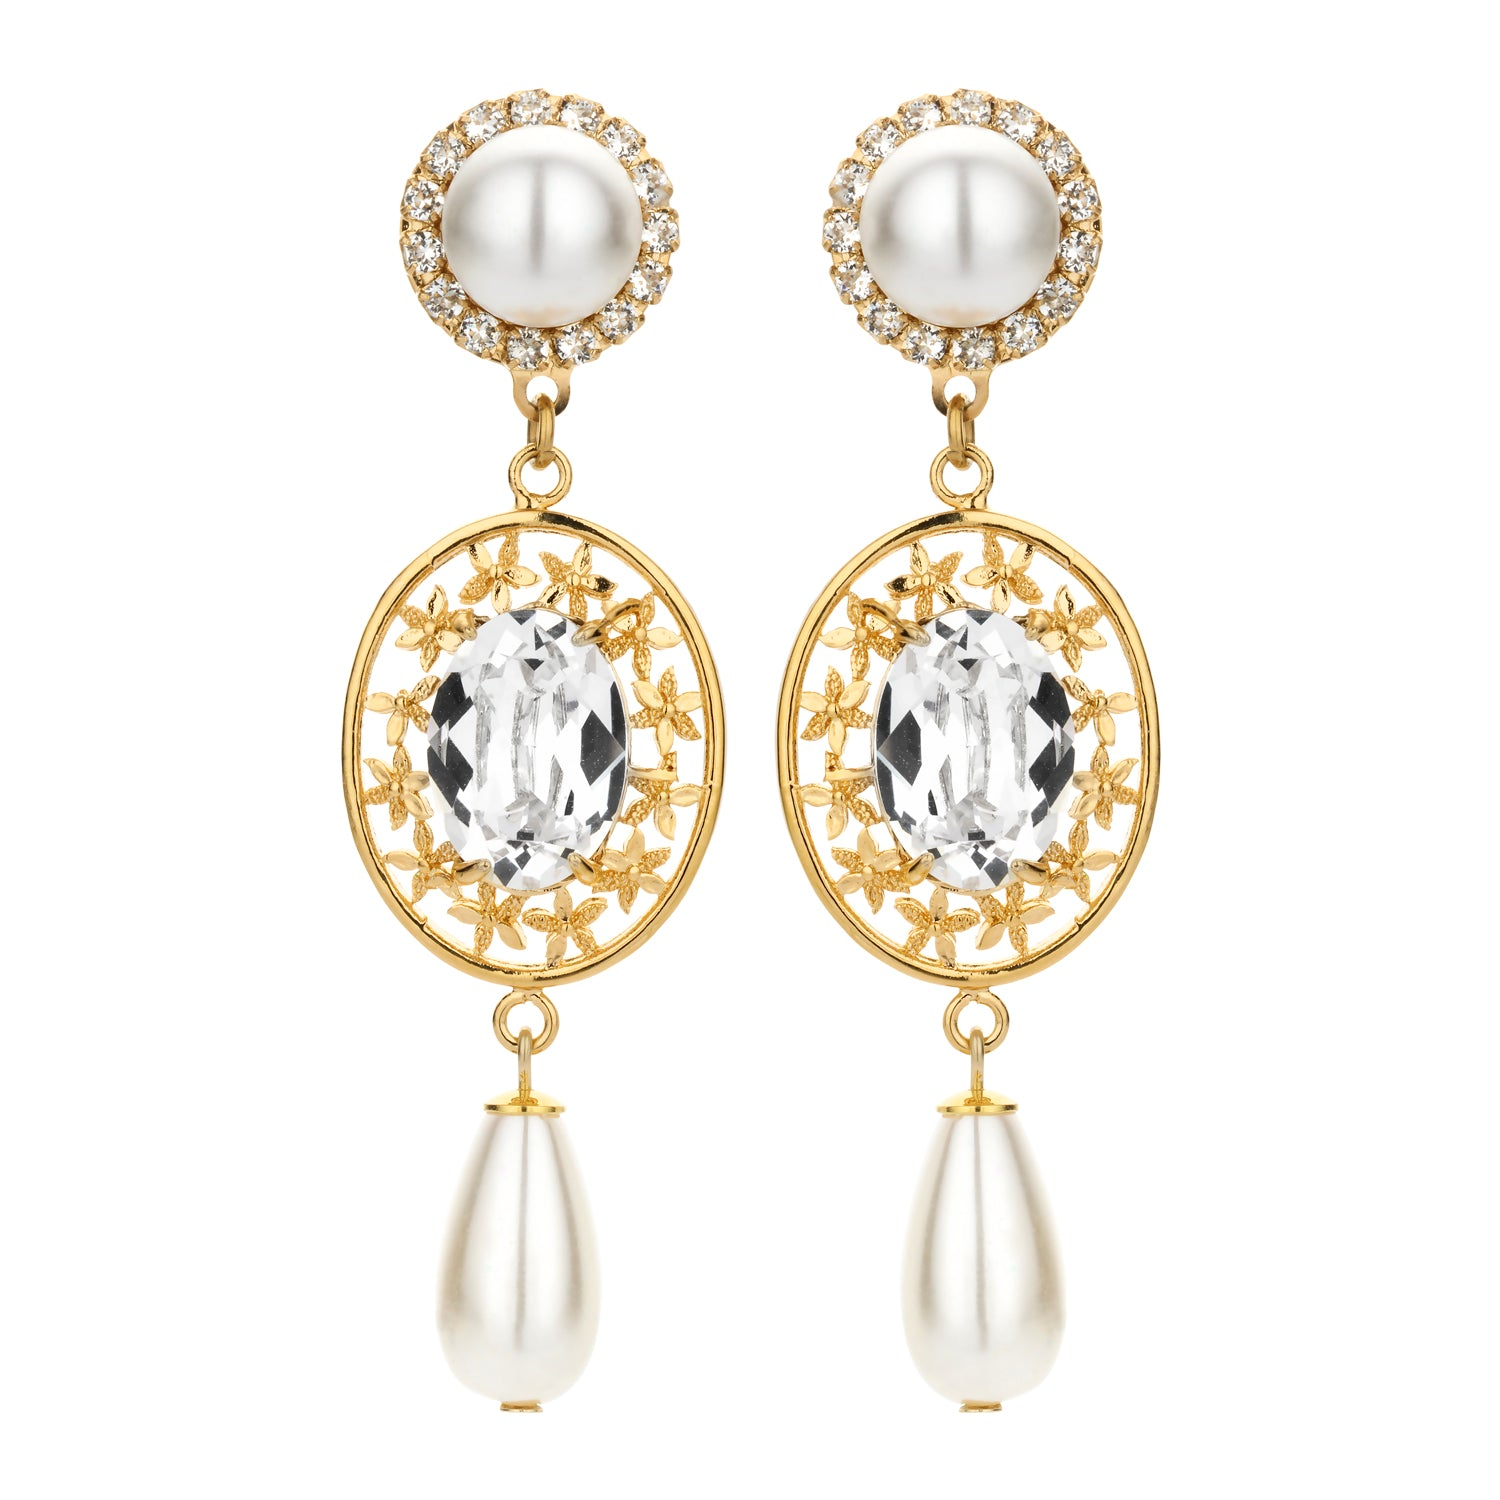 Bridal statement earring pearl strass filigree - Souvenirs de Pomme